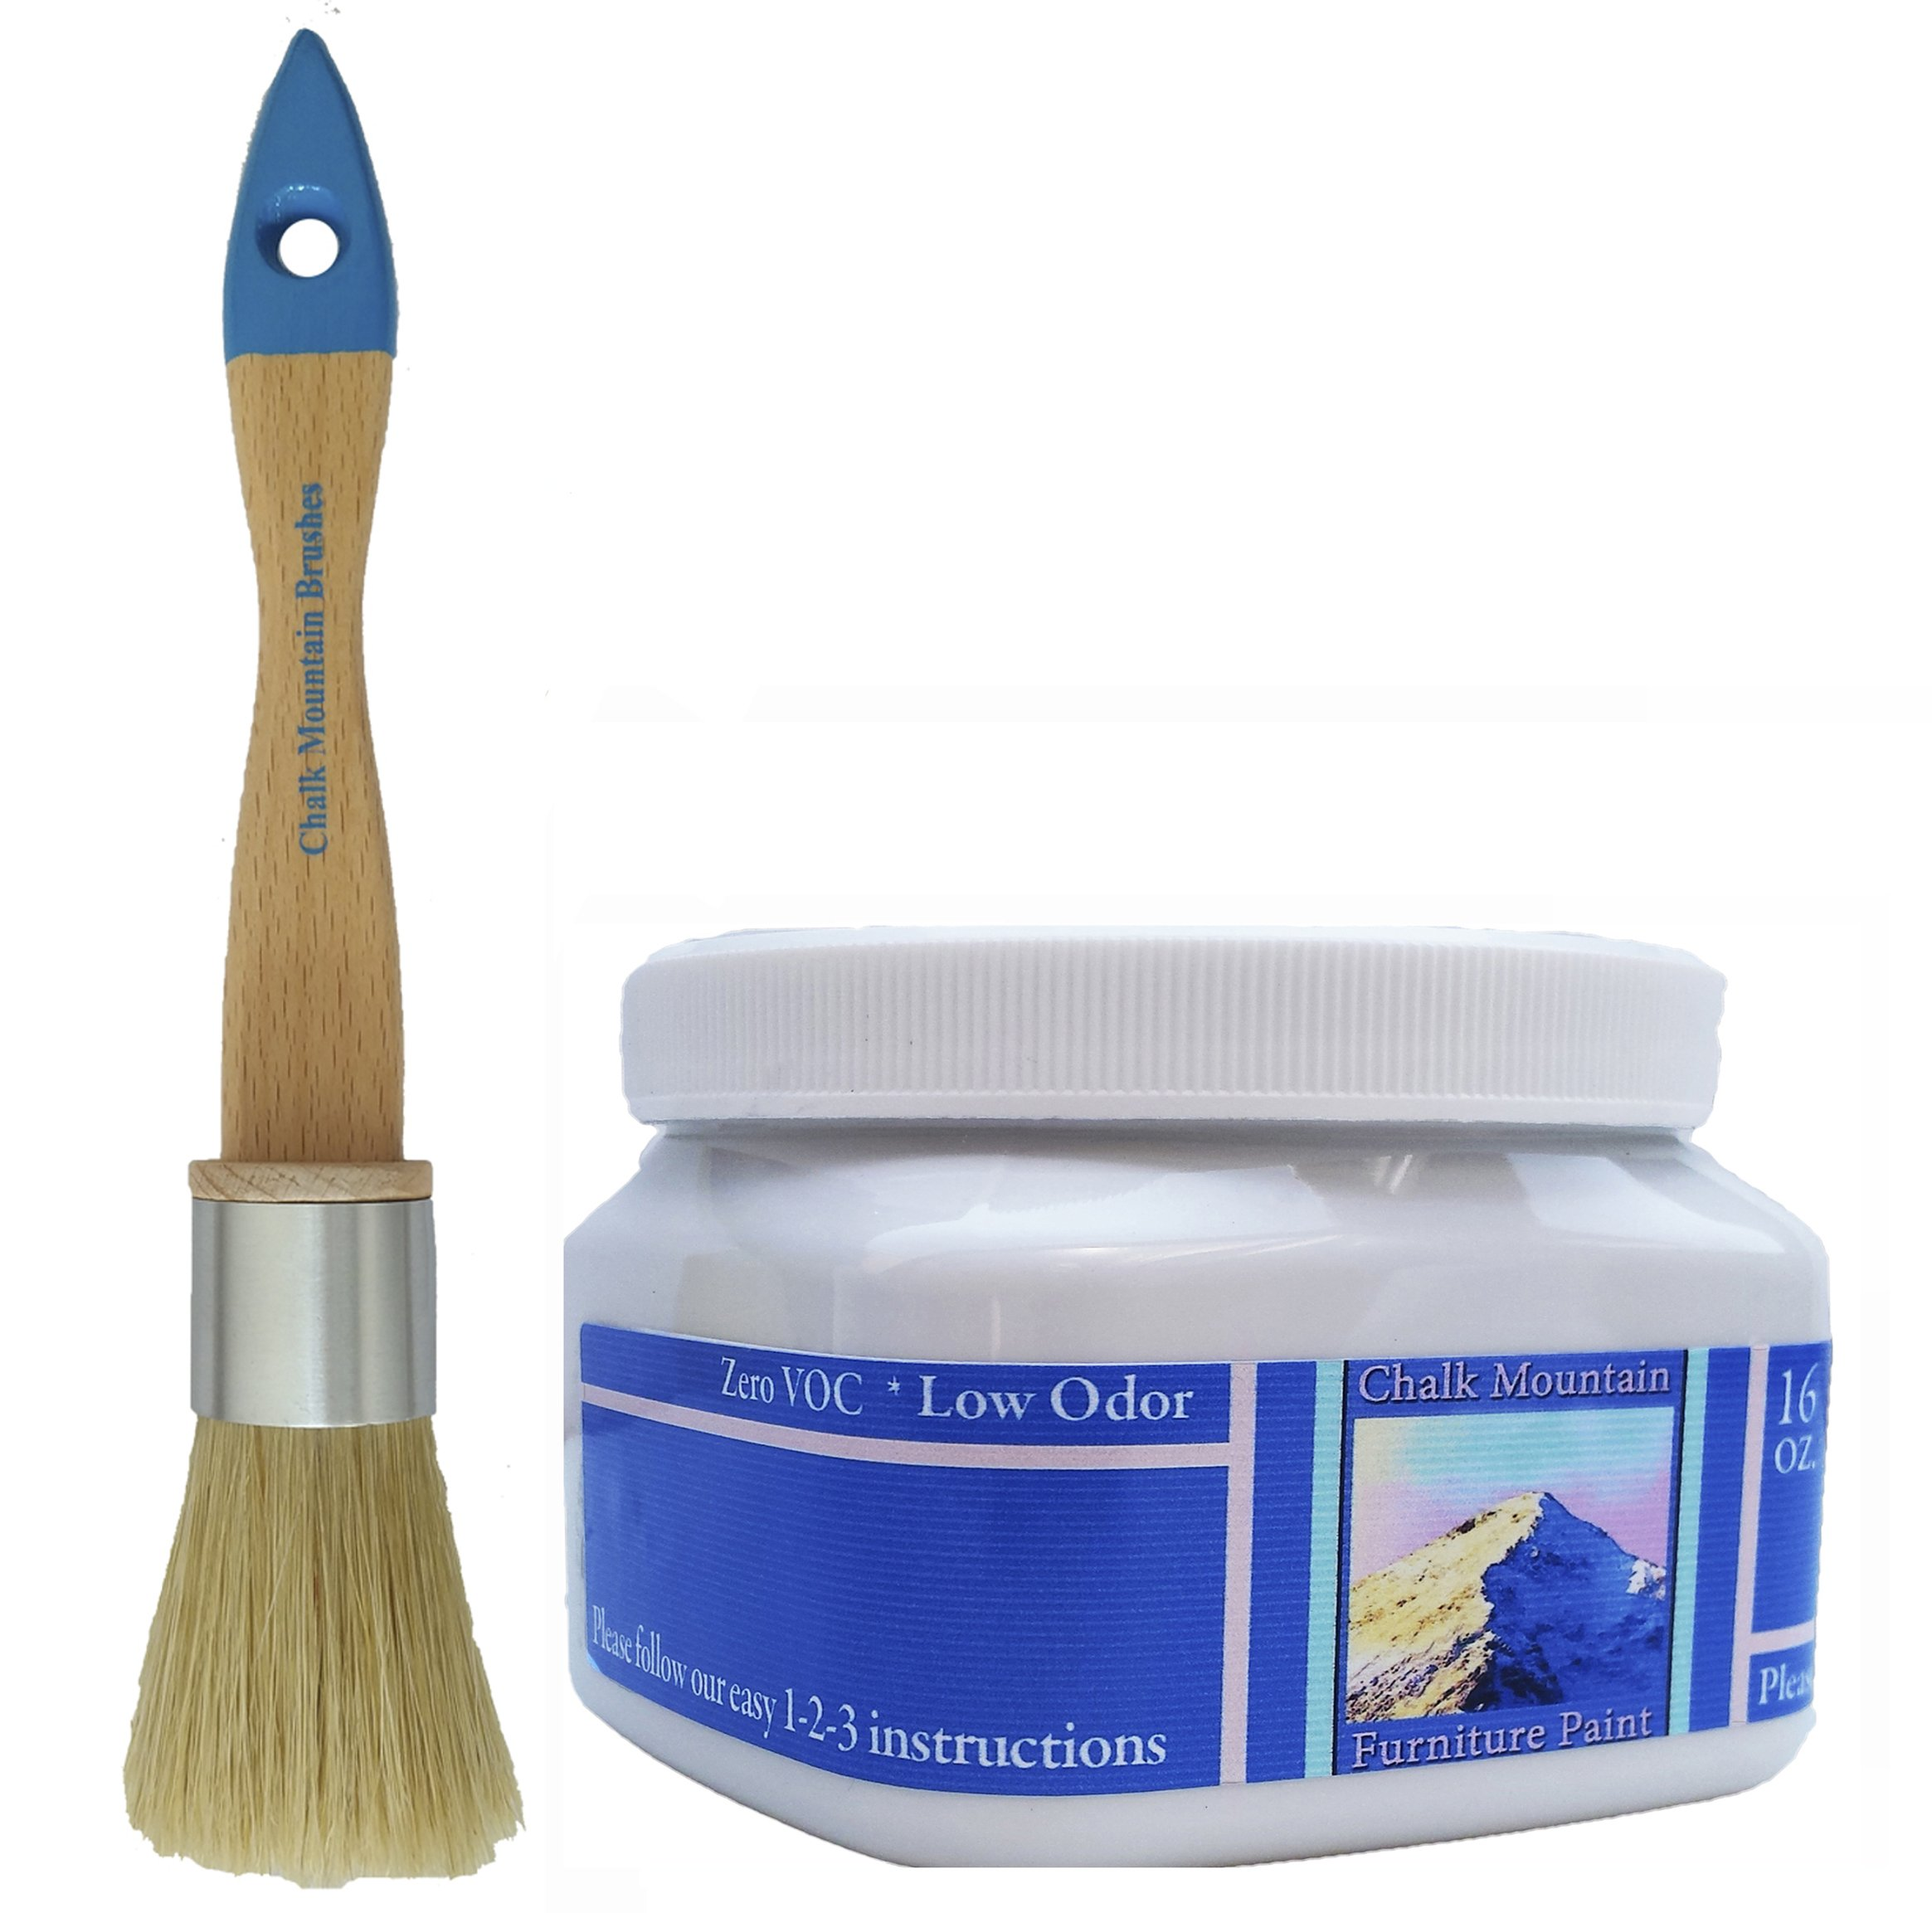 ''NEW LOOK'' Chalk Mountain Chalk Furniture Paint - 16oz Chalk Furniture Paint & Small Round Boar Hair Bristle Paint Brush - Starter Paint Kit (#27)